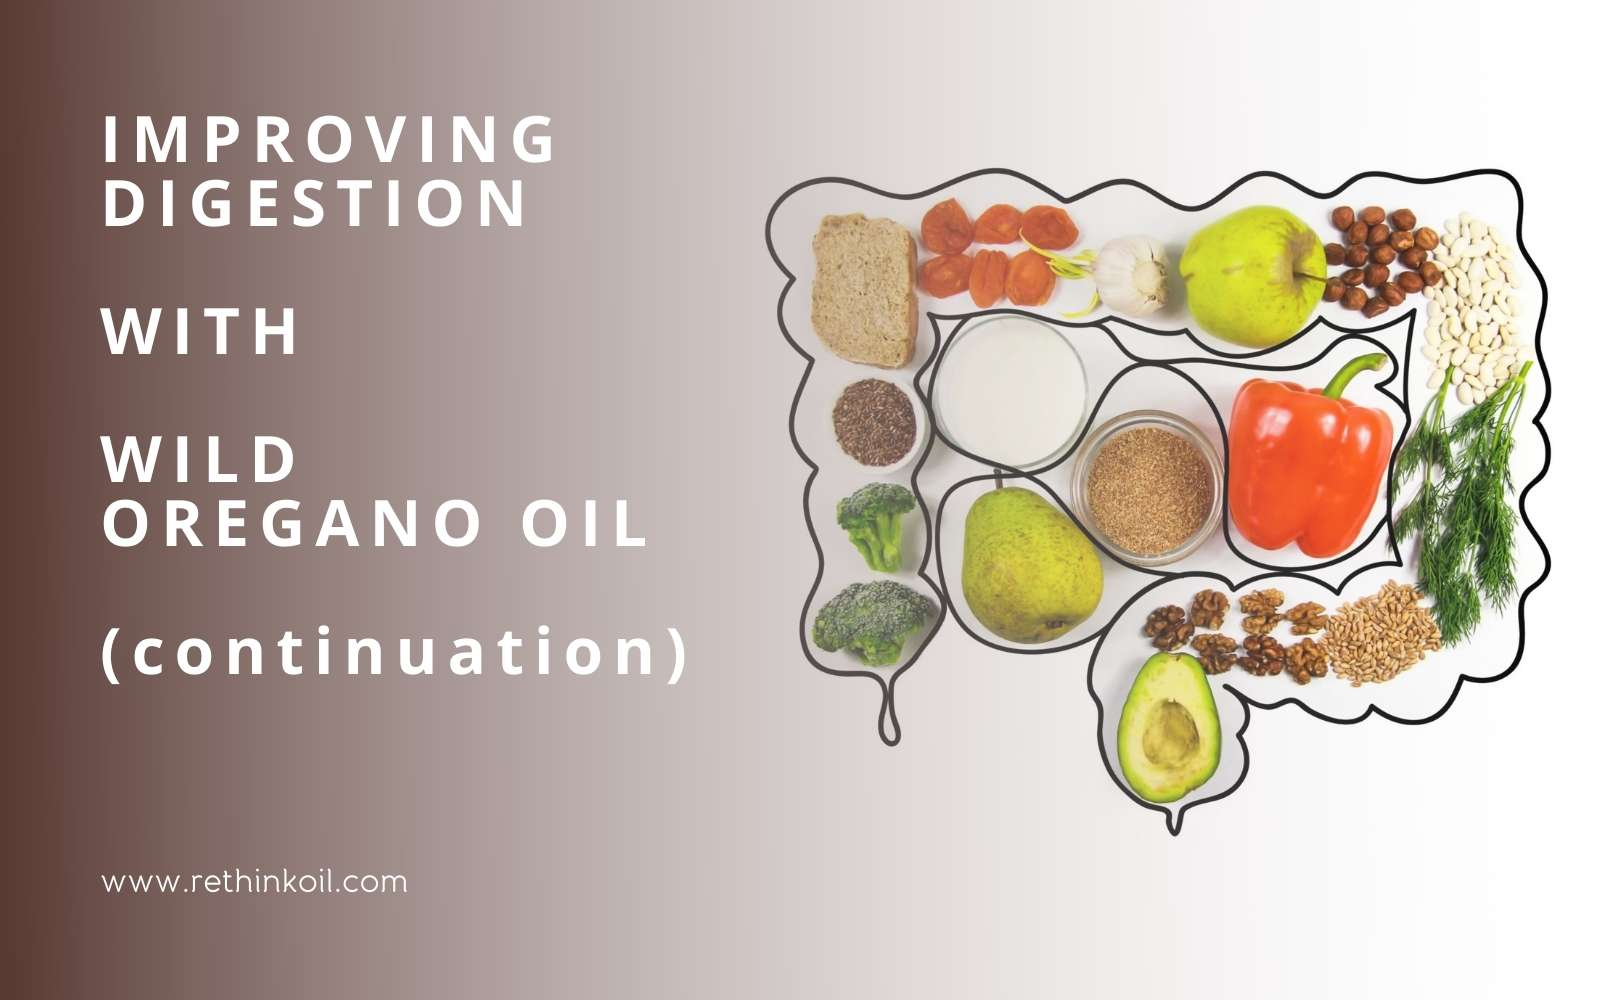 ReThinkOil Blog Improving Digestion with Wild Oregano Oil Continuation